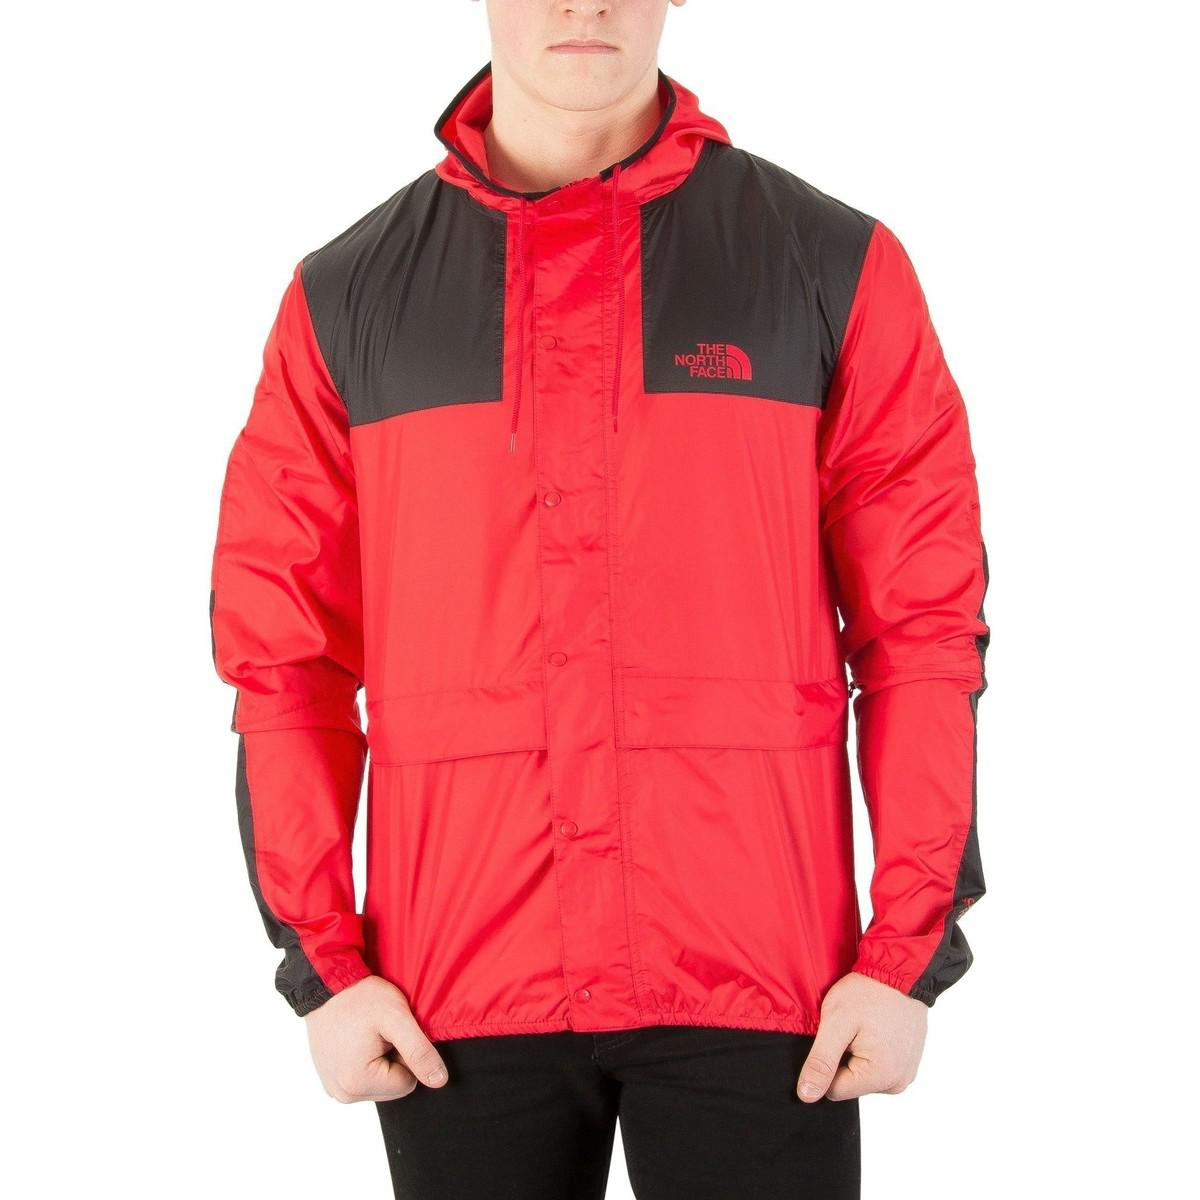 9490e7e5d420 The North Face Men s 1985 Mountain Jacket